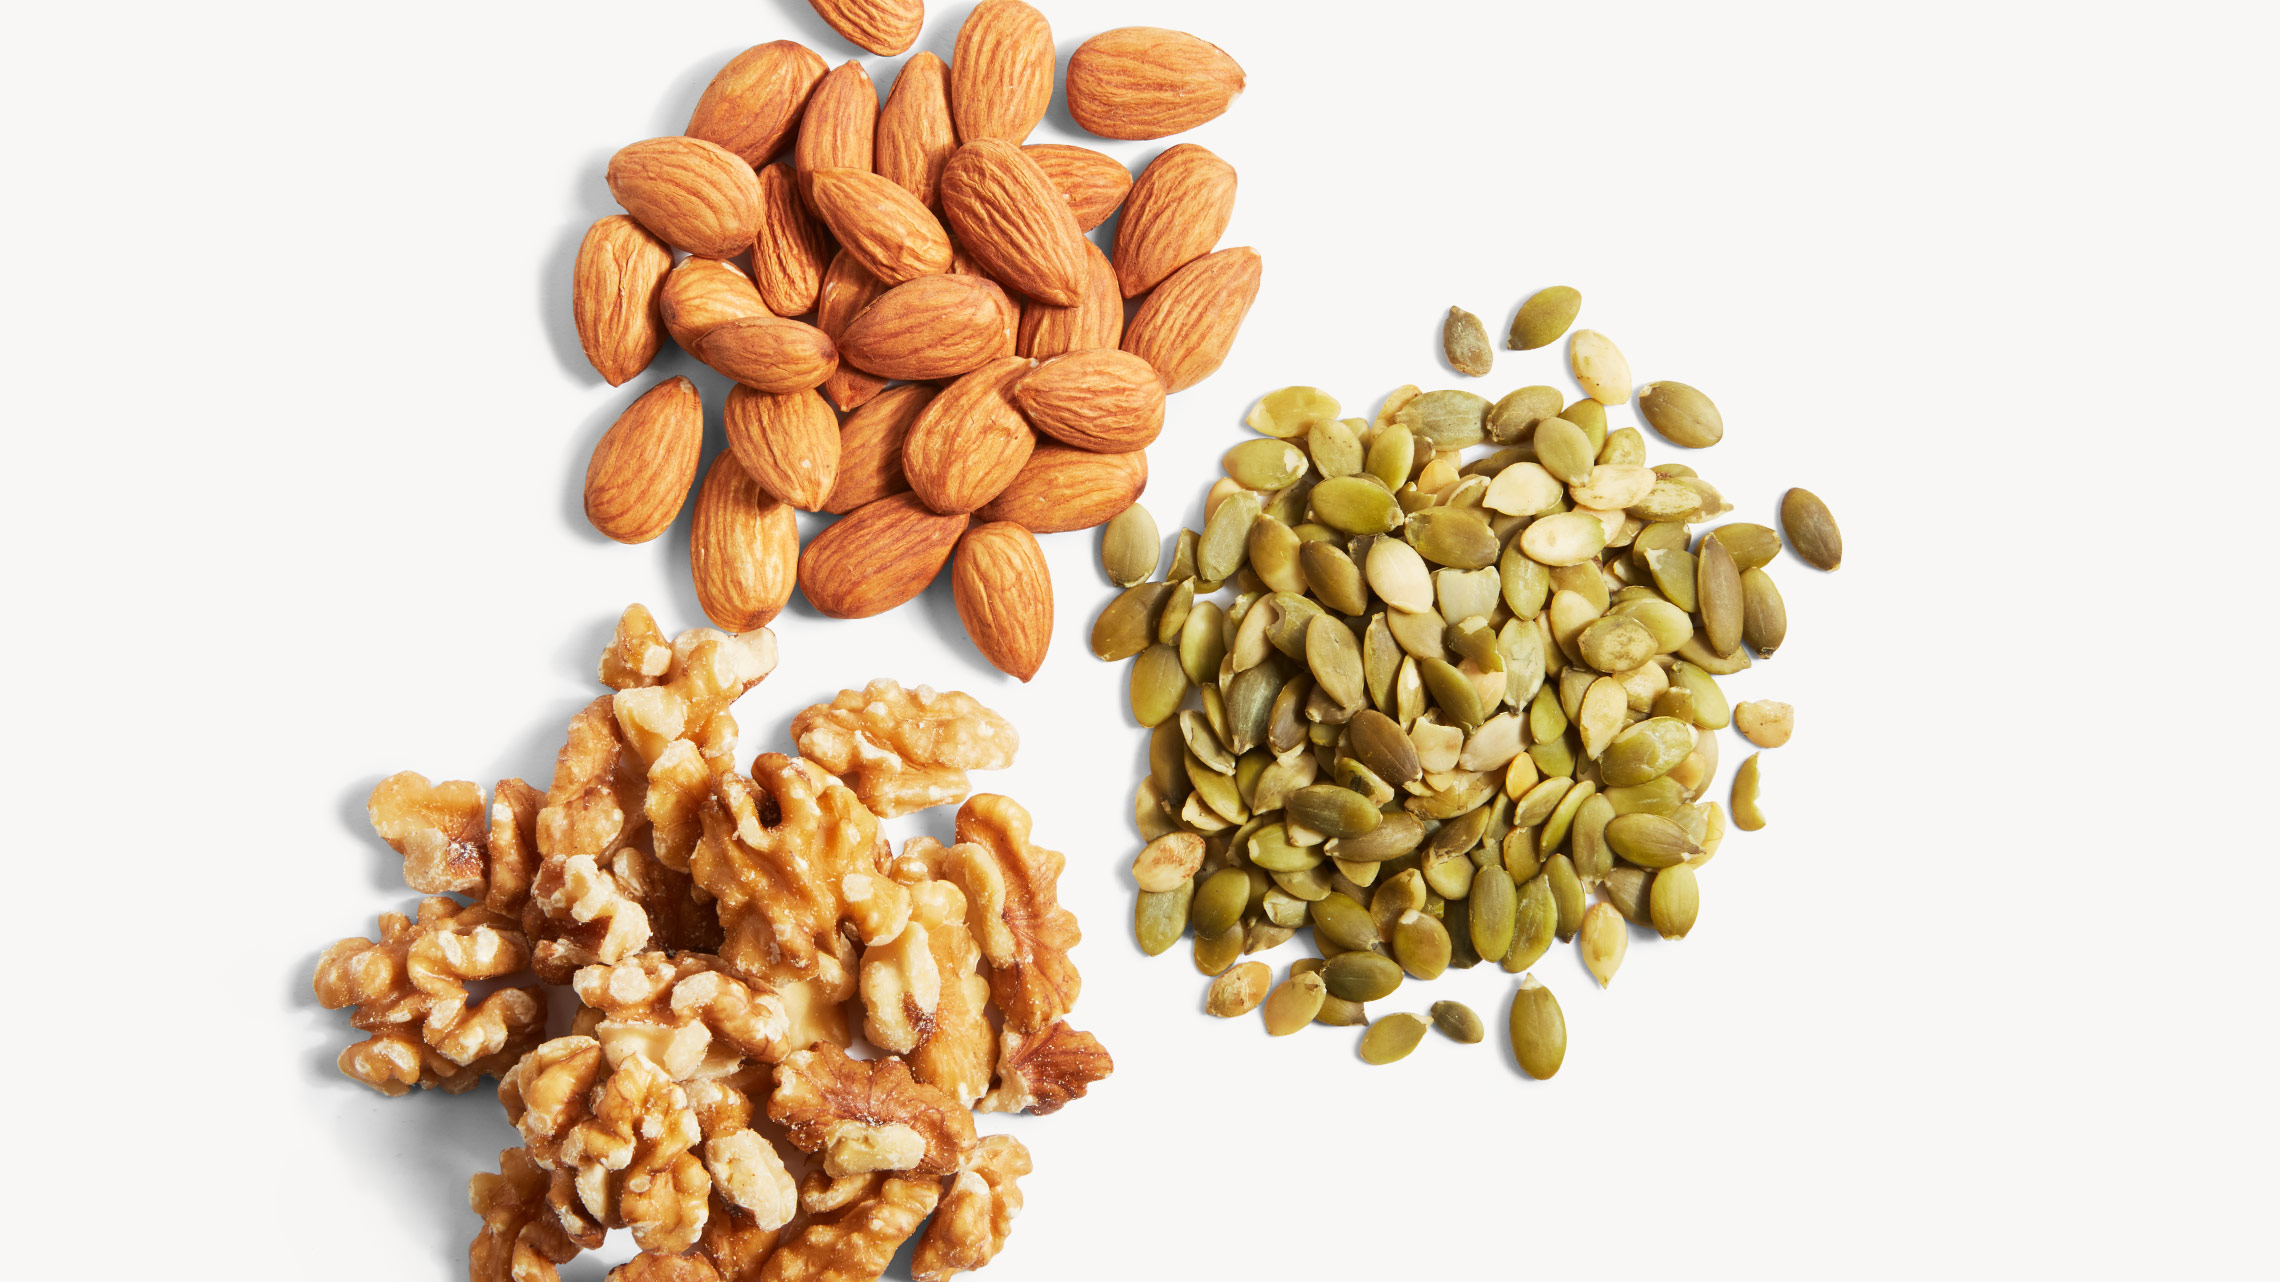 keto diet Nuts and seeds